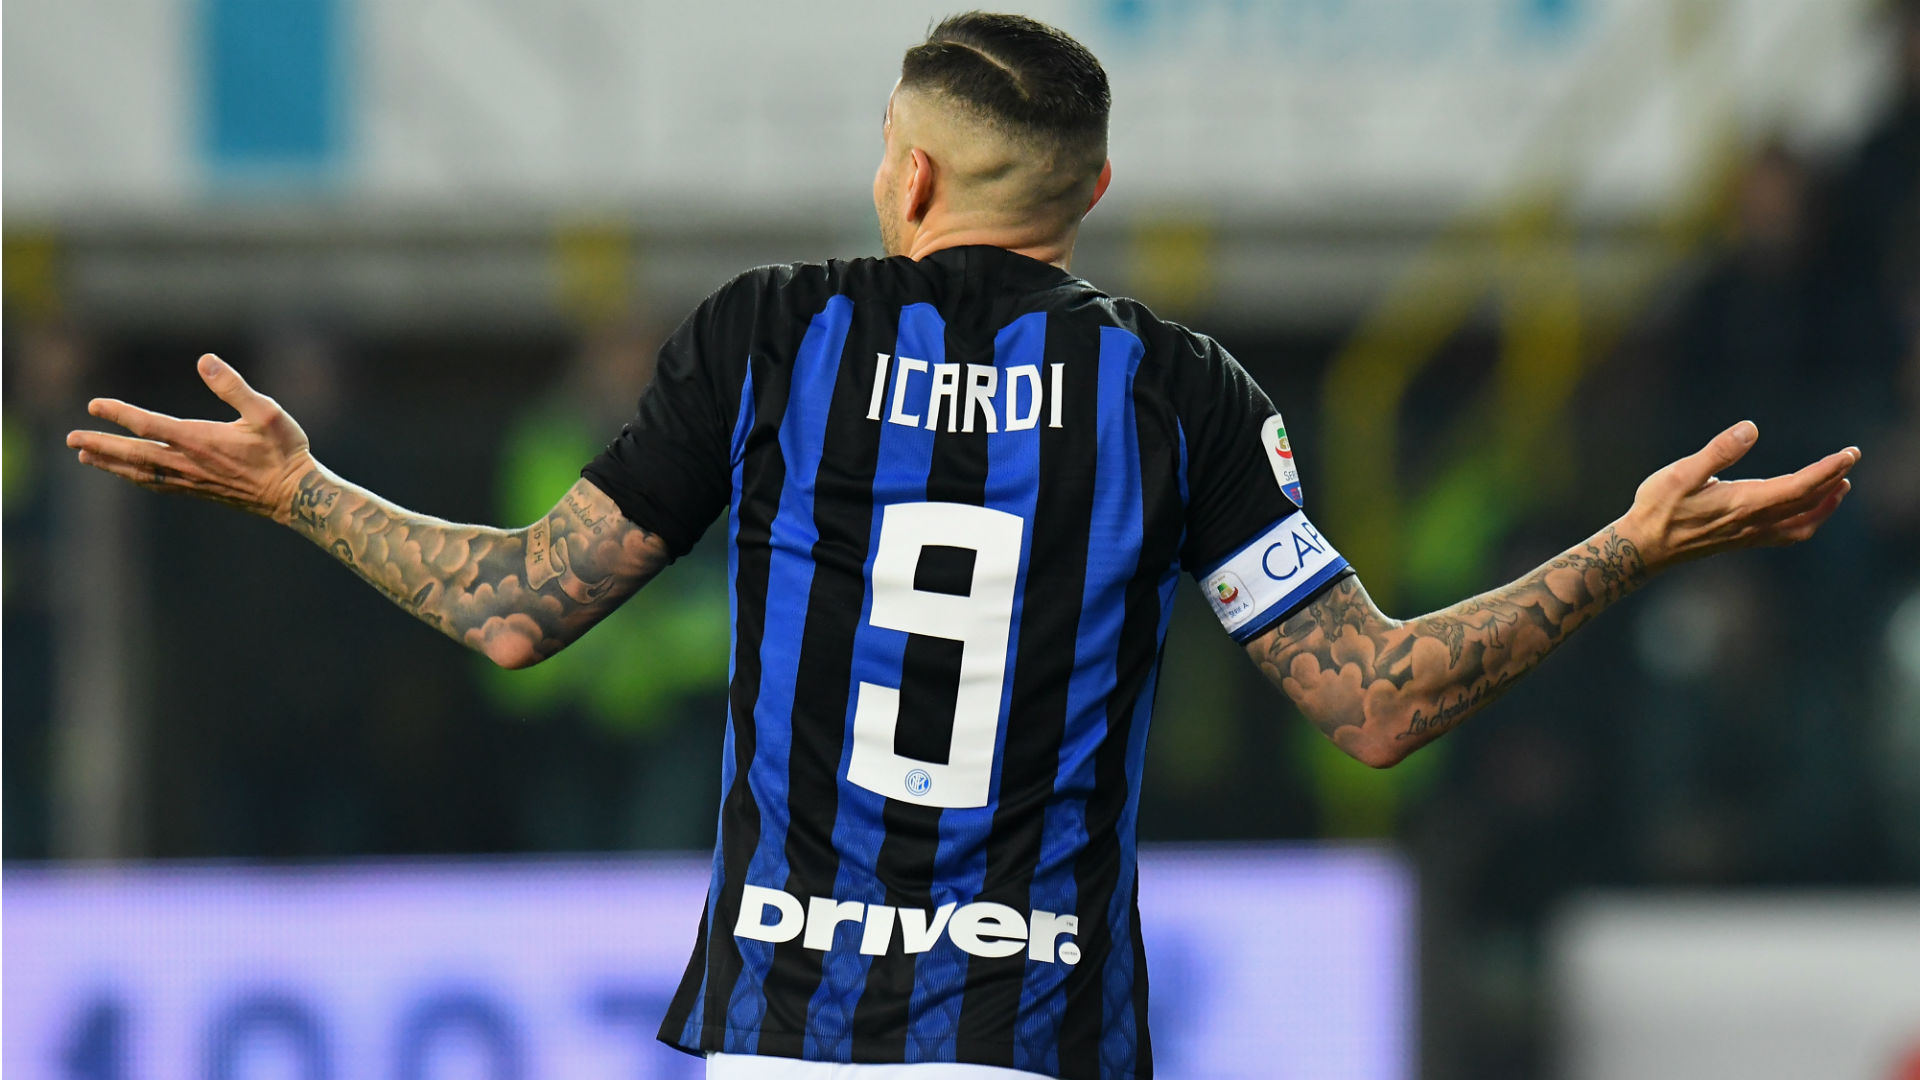 Icardi pulled out of Inter squad - Spalletti